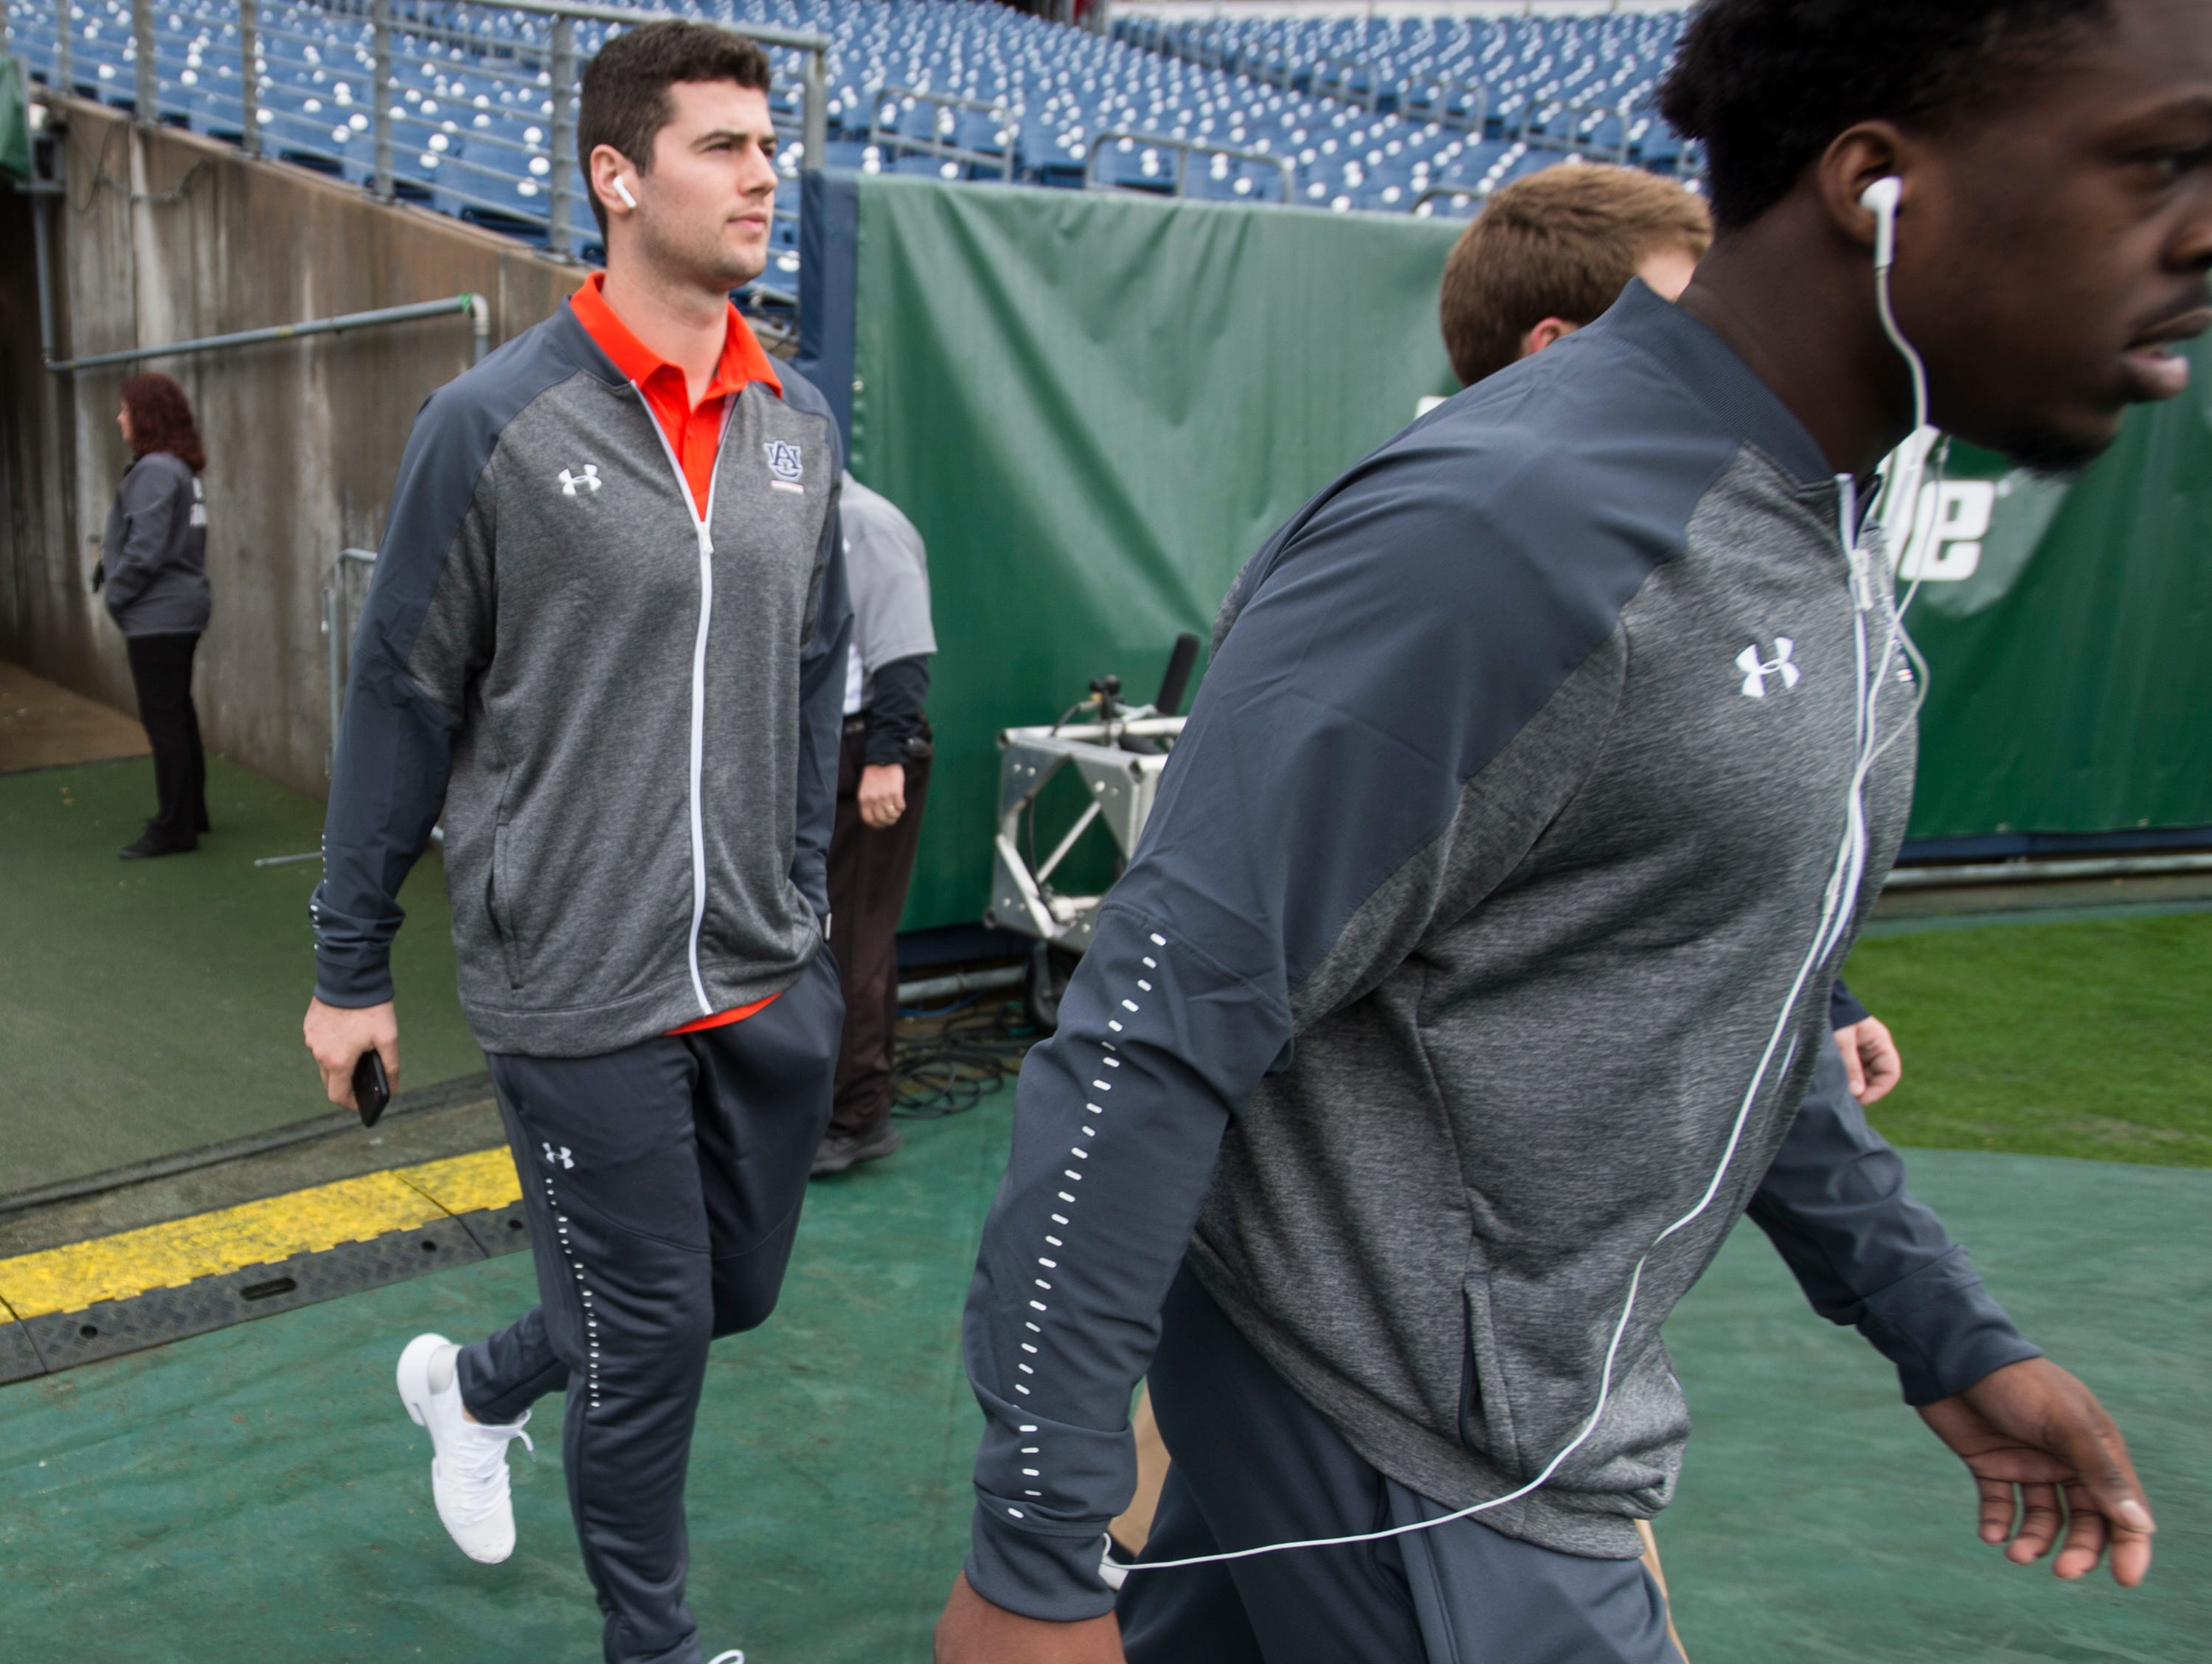 Auburn quarterback Jarrett Stidham (8) walks the field before taking on Purdue in the Music City Bowl at Nissan Stadium in Nashville, Tenn., on Friday, Dec. 28, 2018.